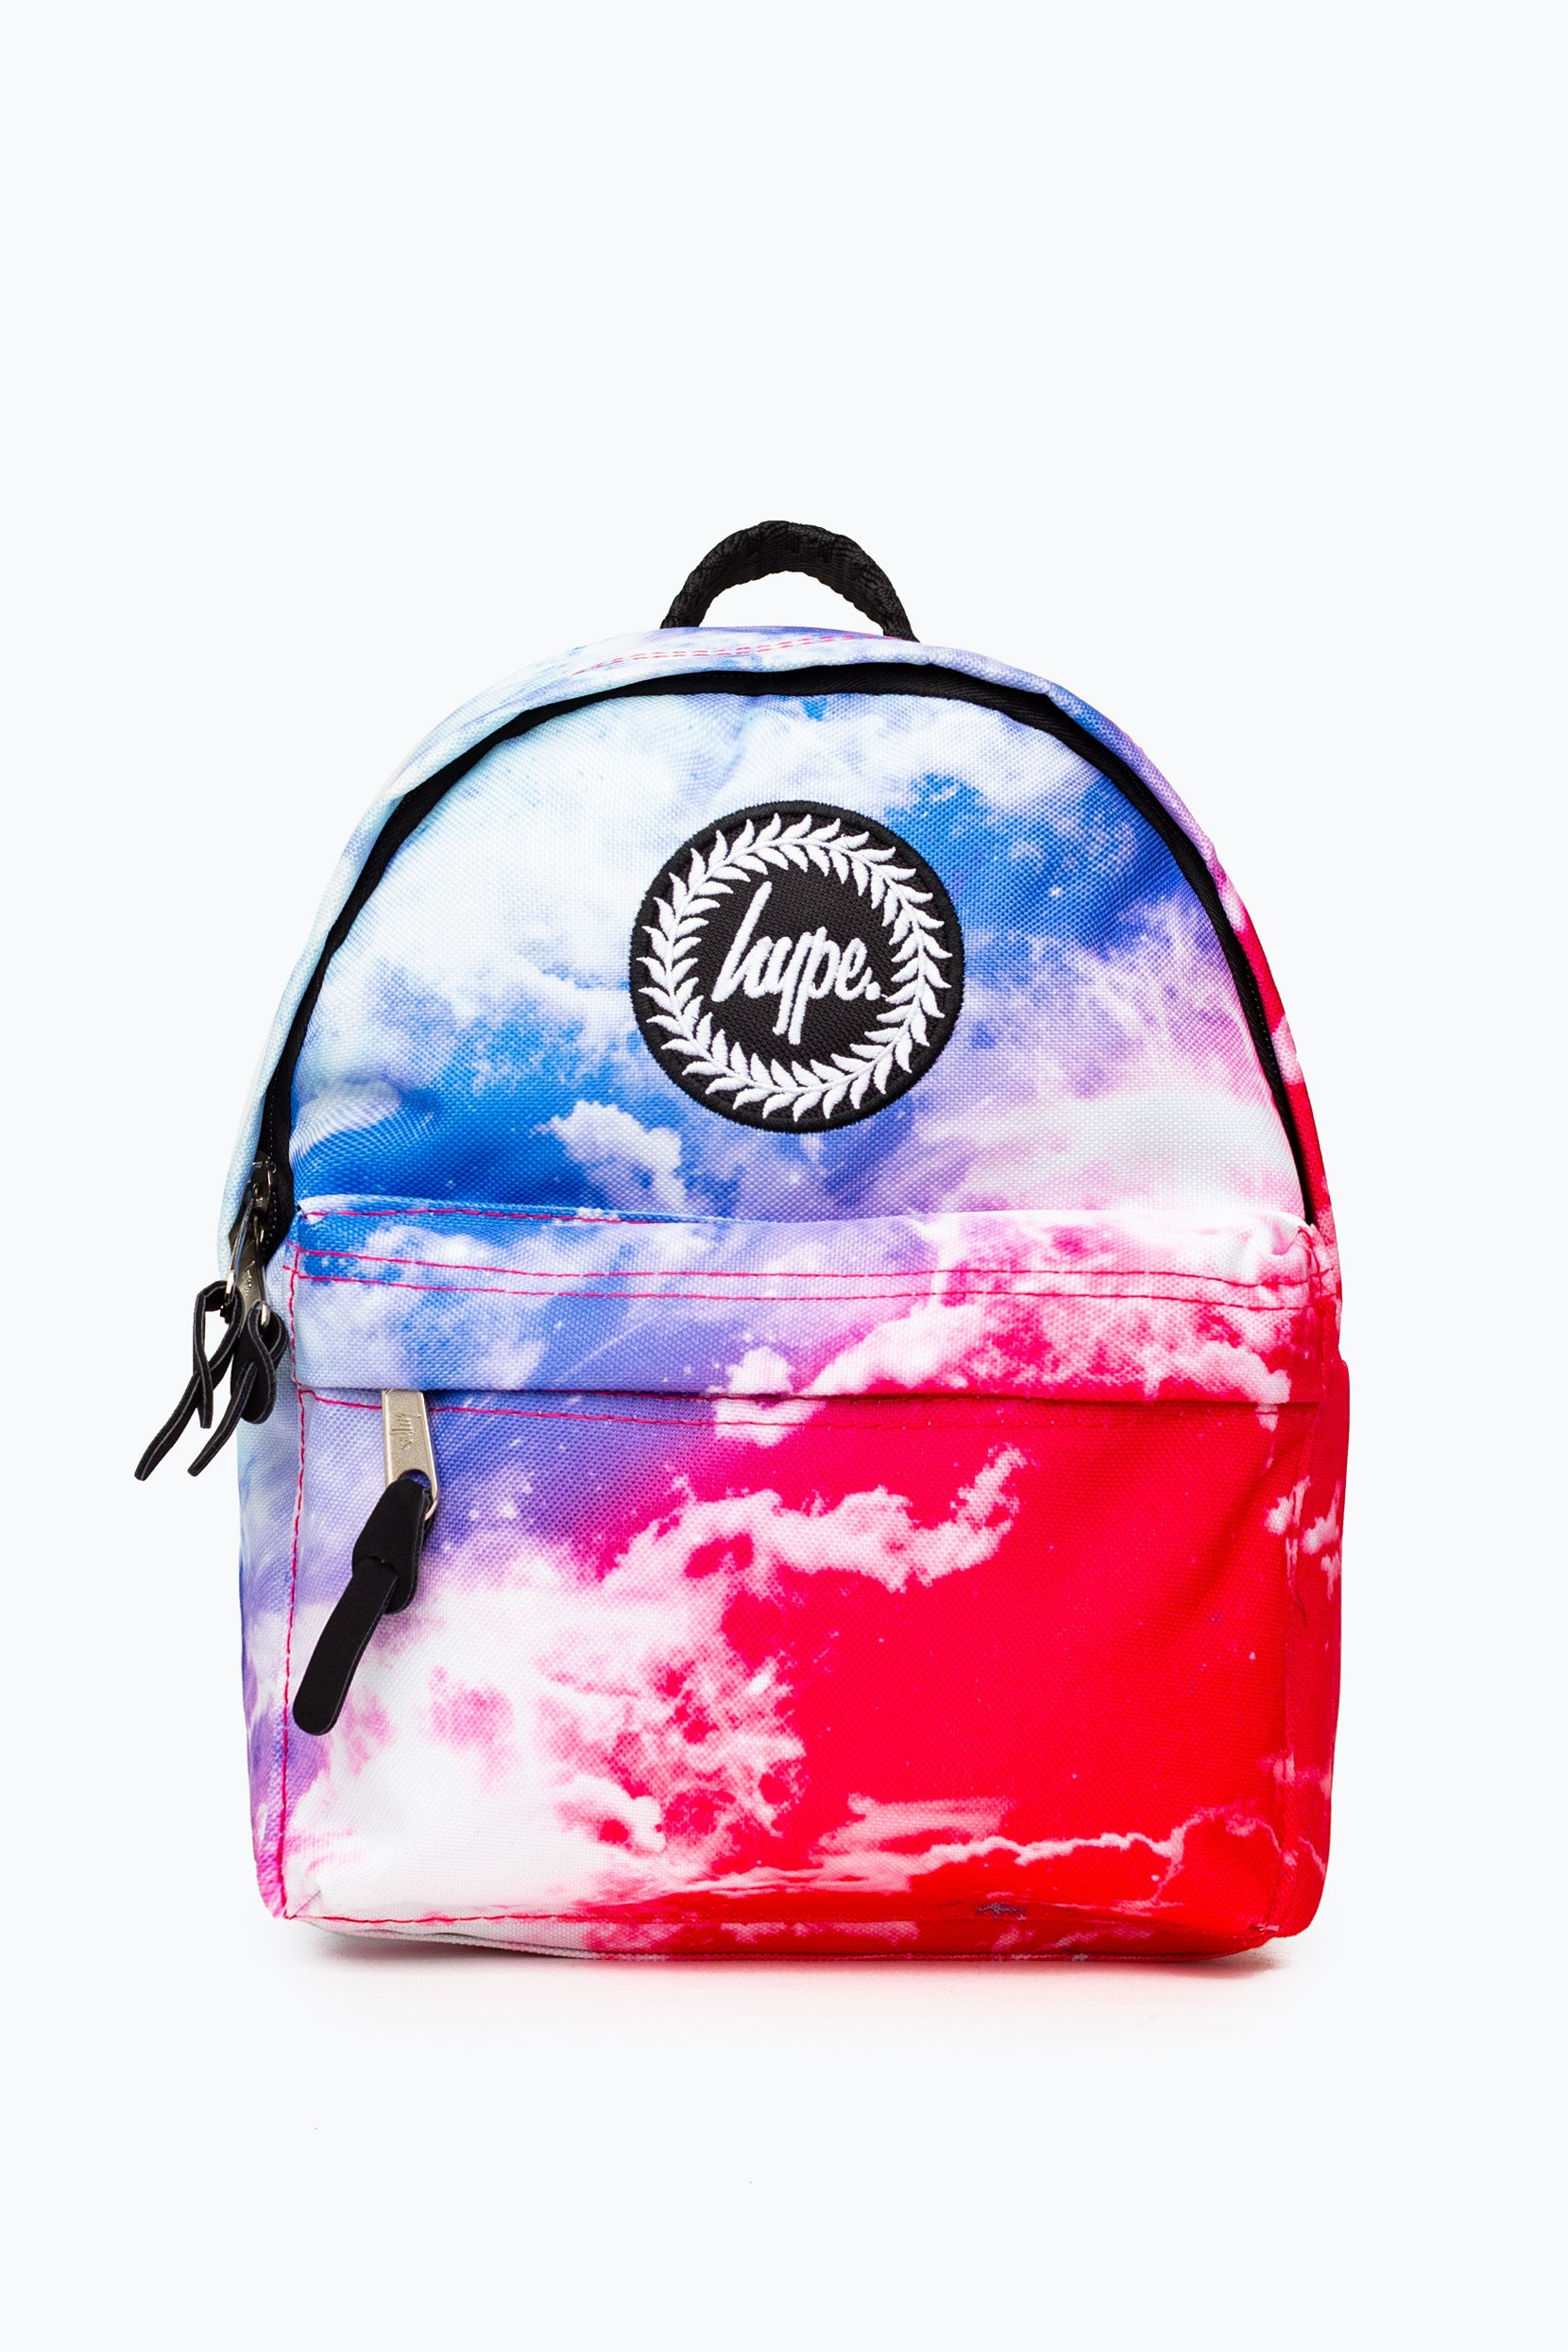 44e6ead6c7f HYPE CLOUD MINI BACKPACK – JustHype ltd